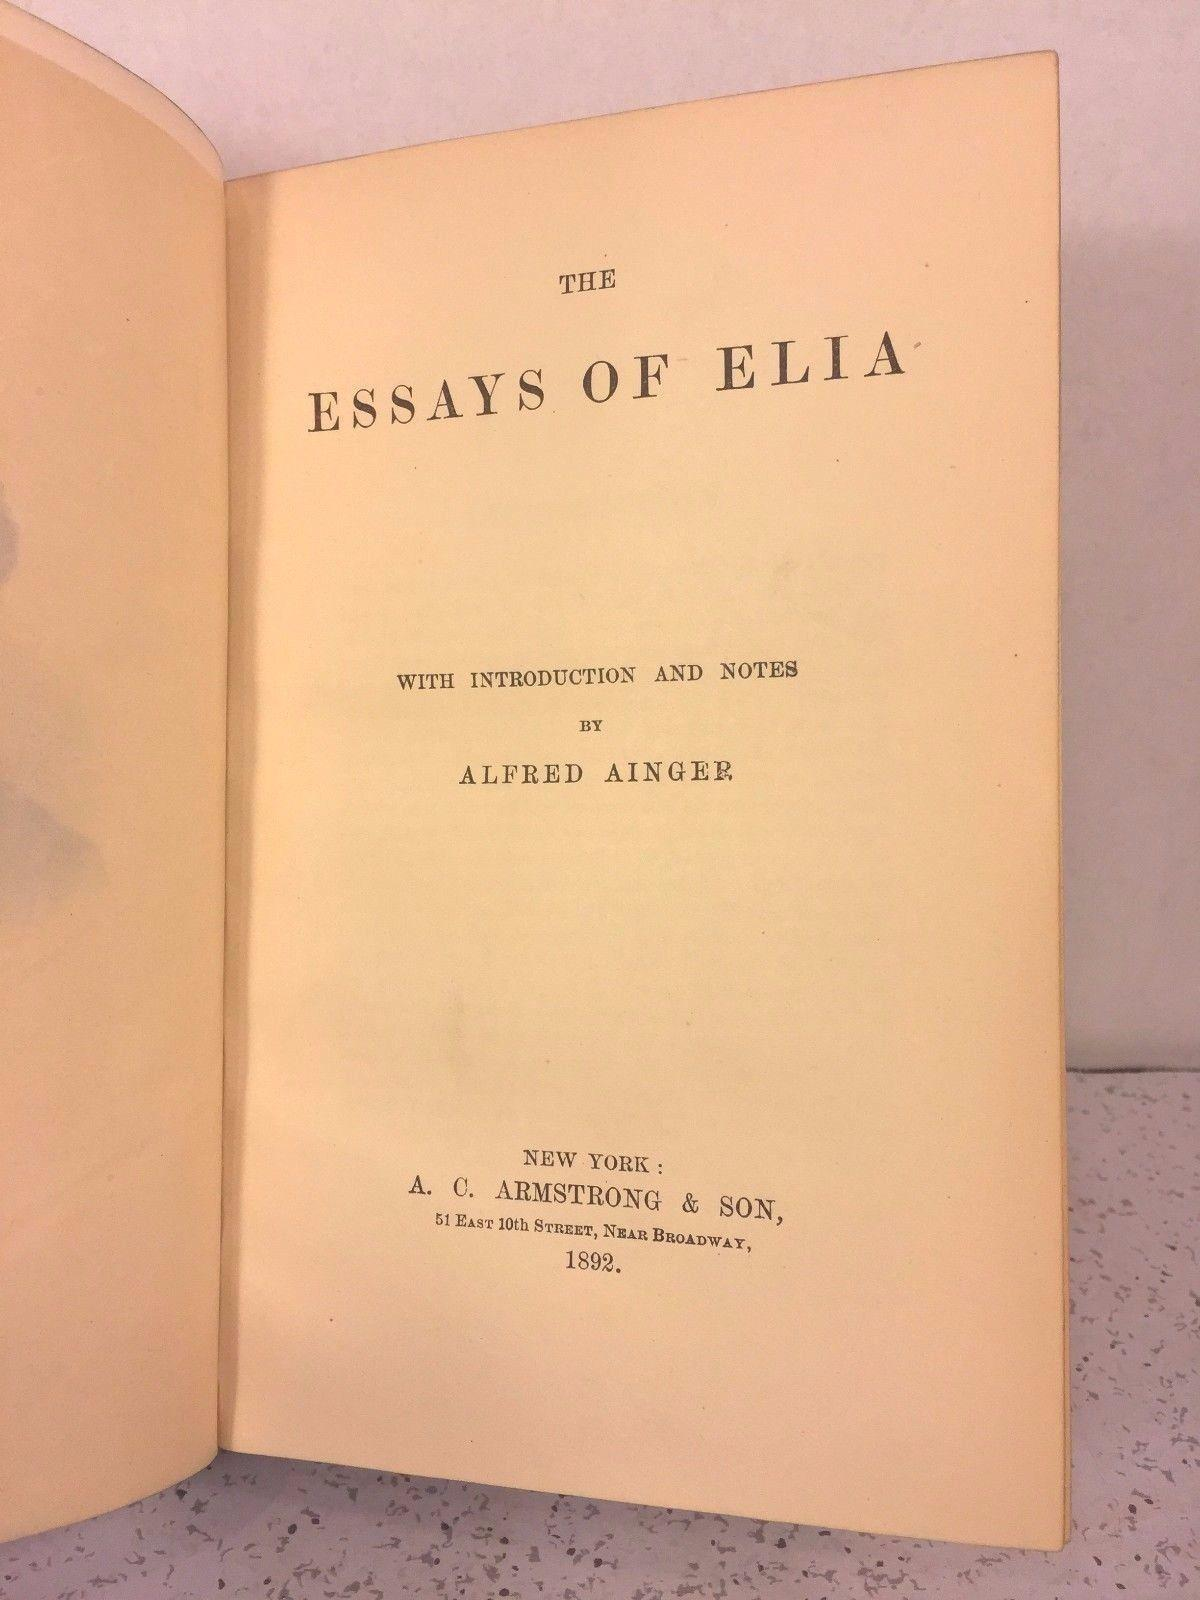 """essays of elia analysis Becka crayton 13 september 2016 engl 3214-001 analysis of """"old china"""" by charles lamb charles' lamb's old china comes from a collection of his writings called, elia and the last essays of elia in this specific piece, he focuses on the beauty of old china."""